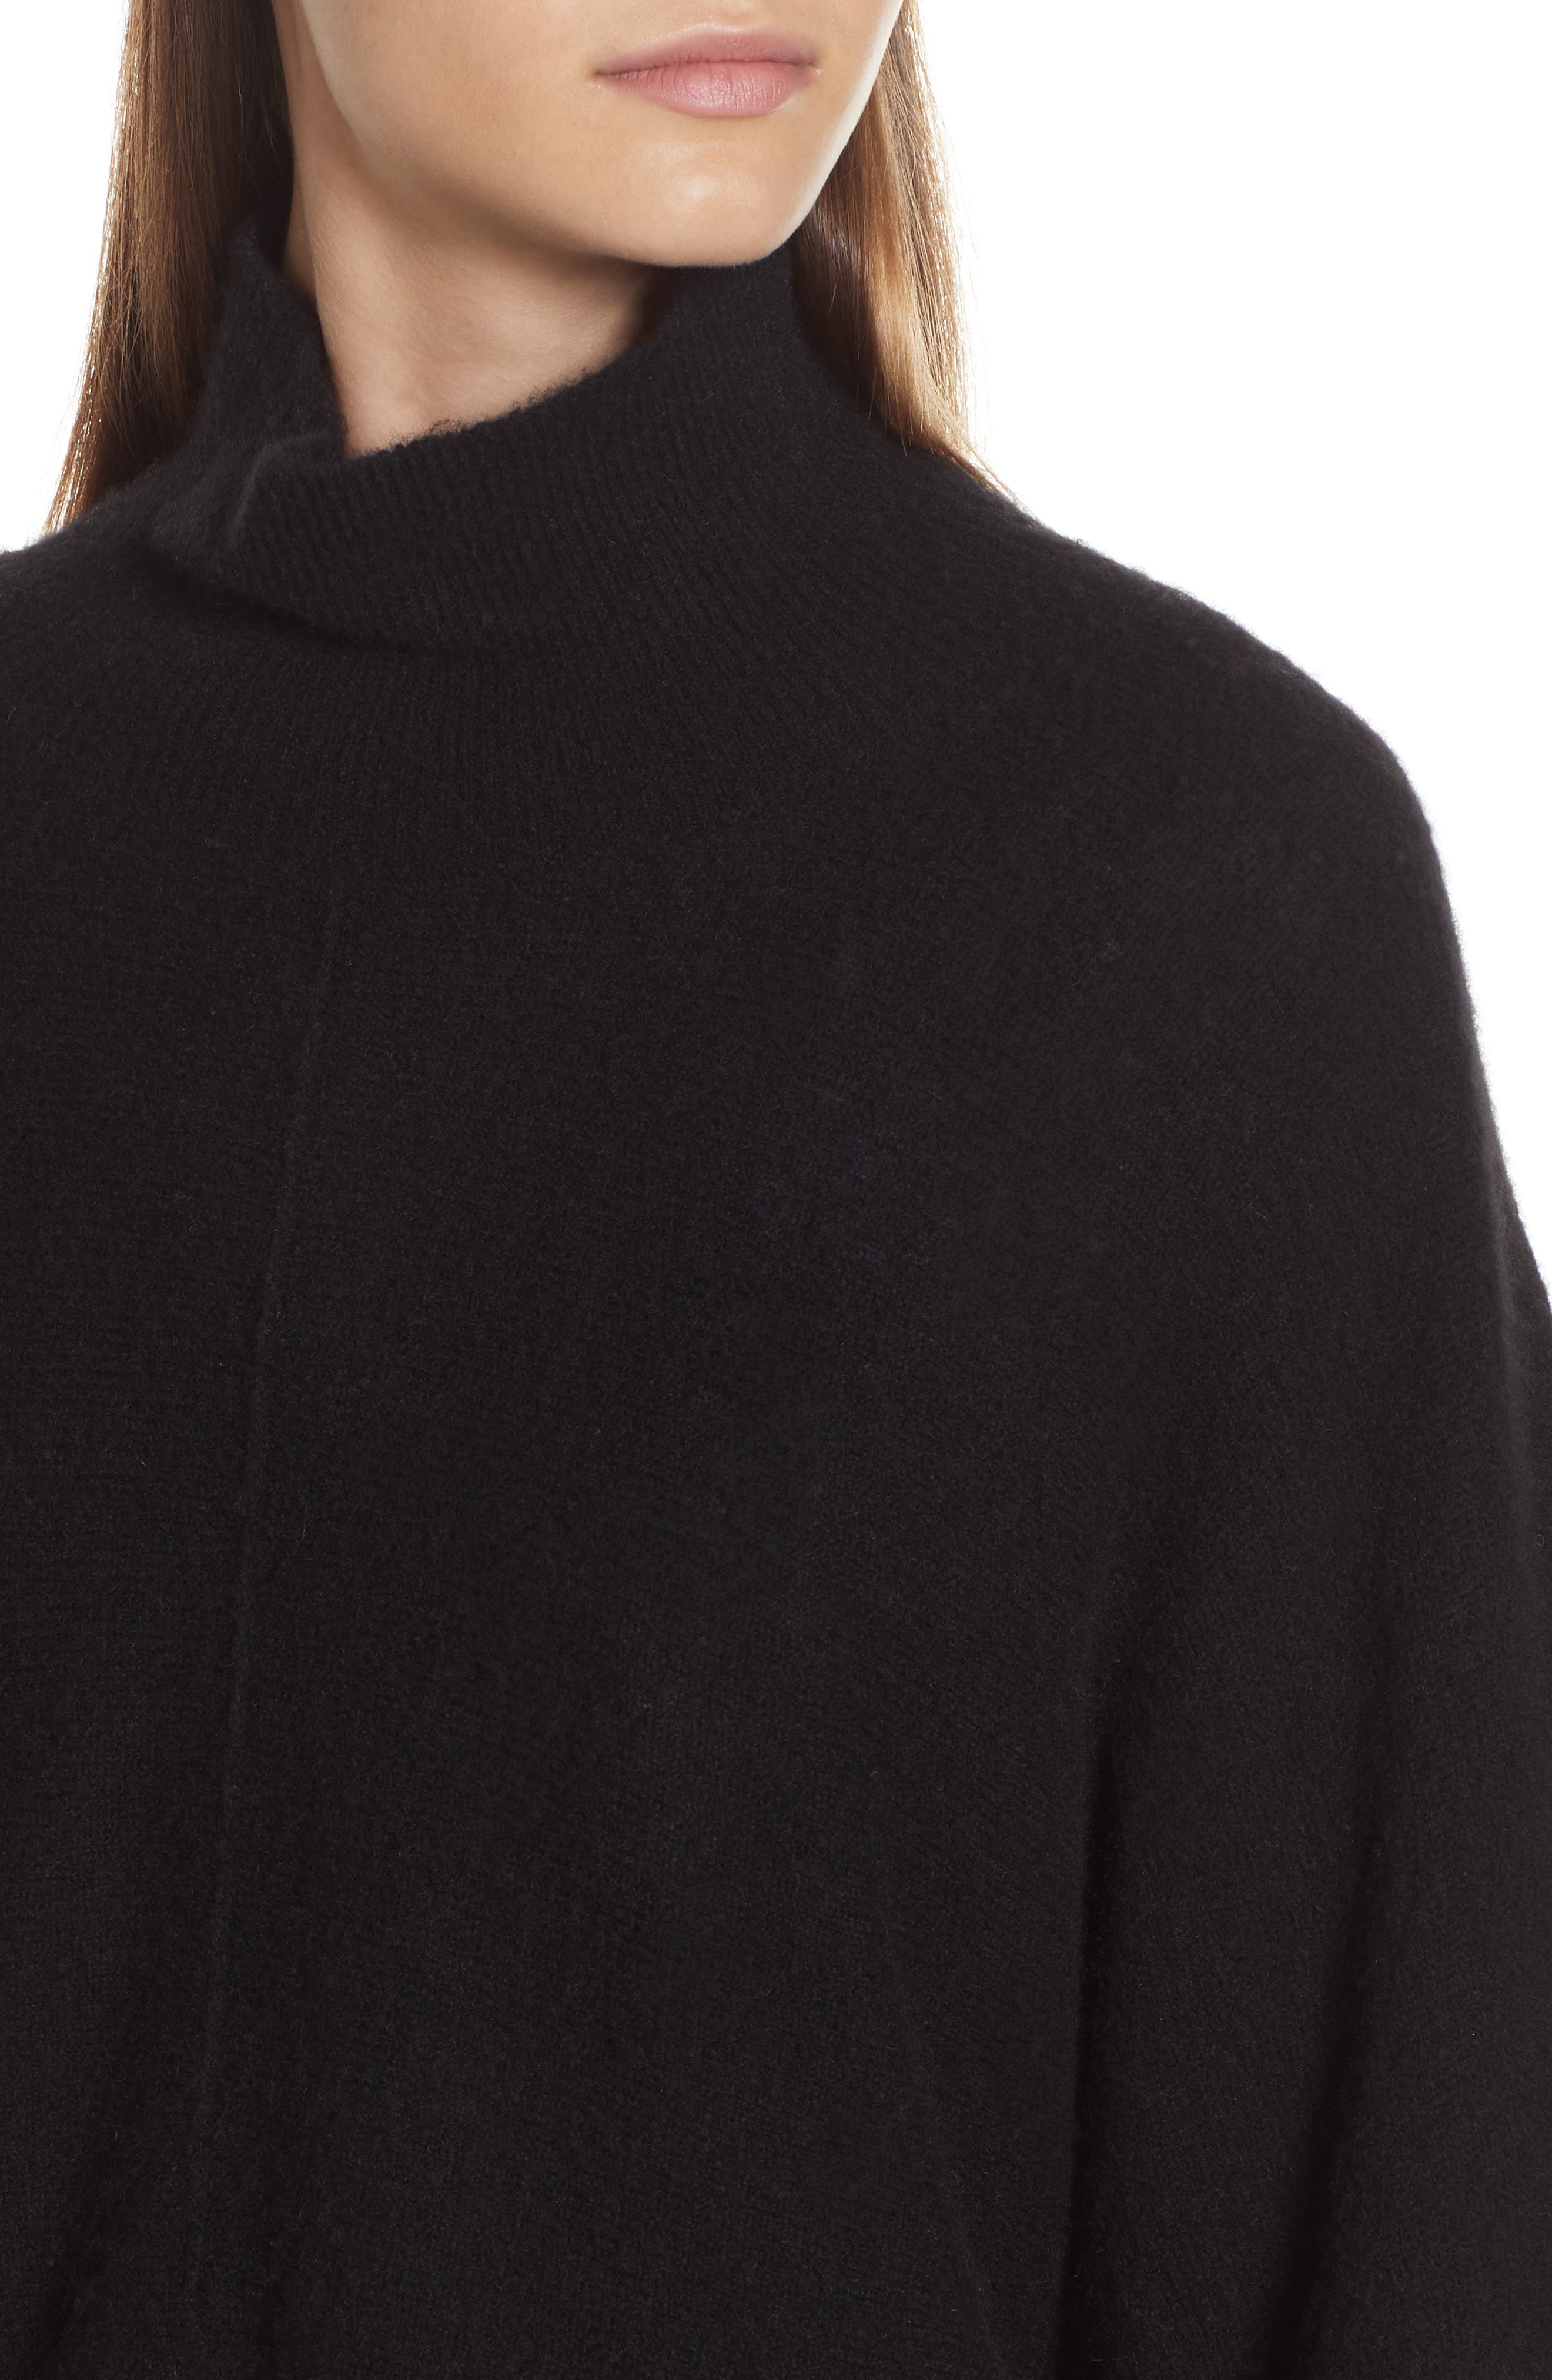 Crop Poncho Sweater,                             Alternate thumbnail 4, color,                             BLACK